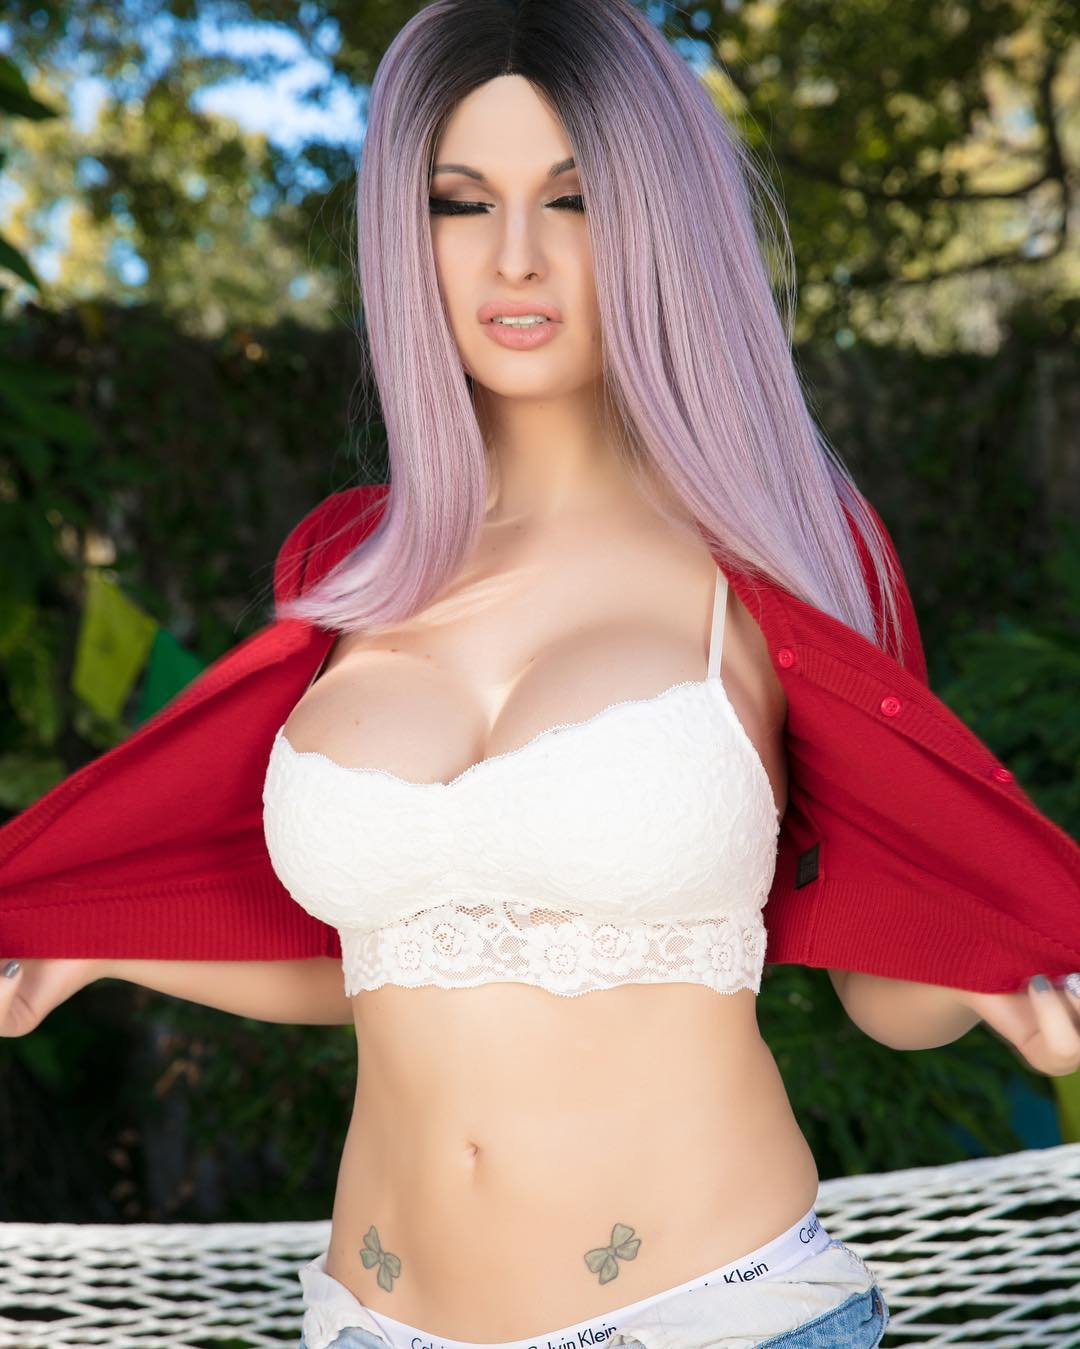 Beautiful Bailey Jay showing her boobies outside